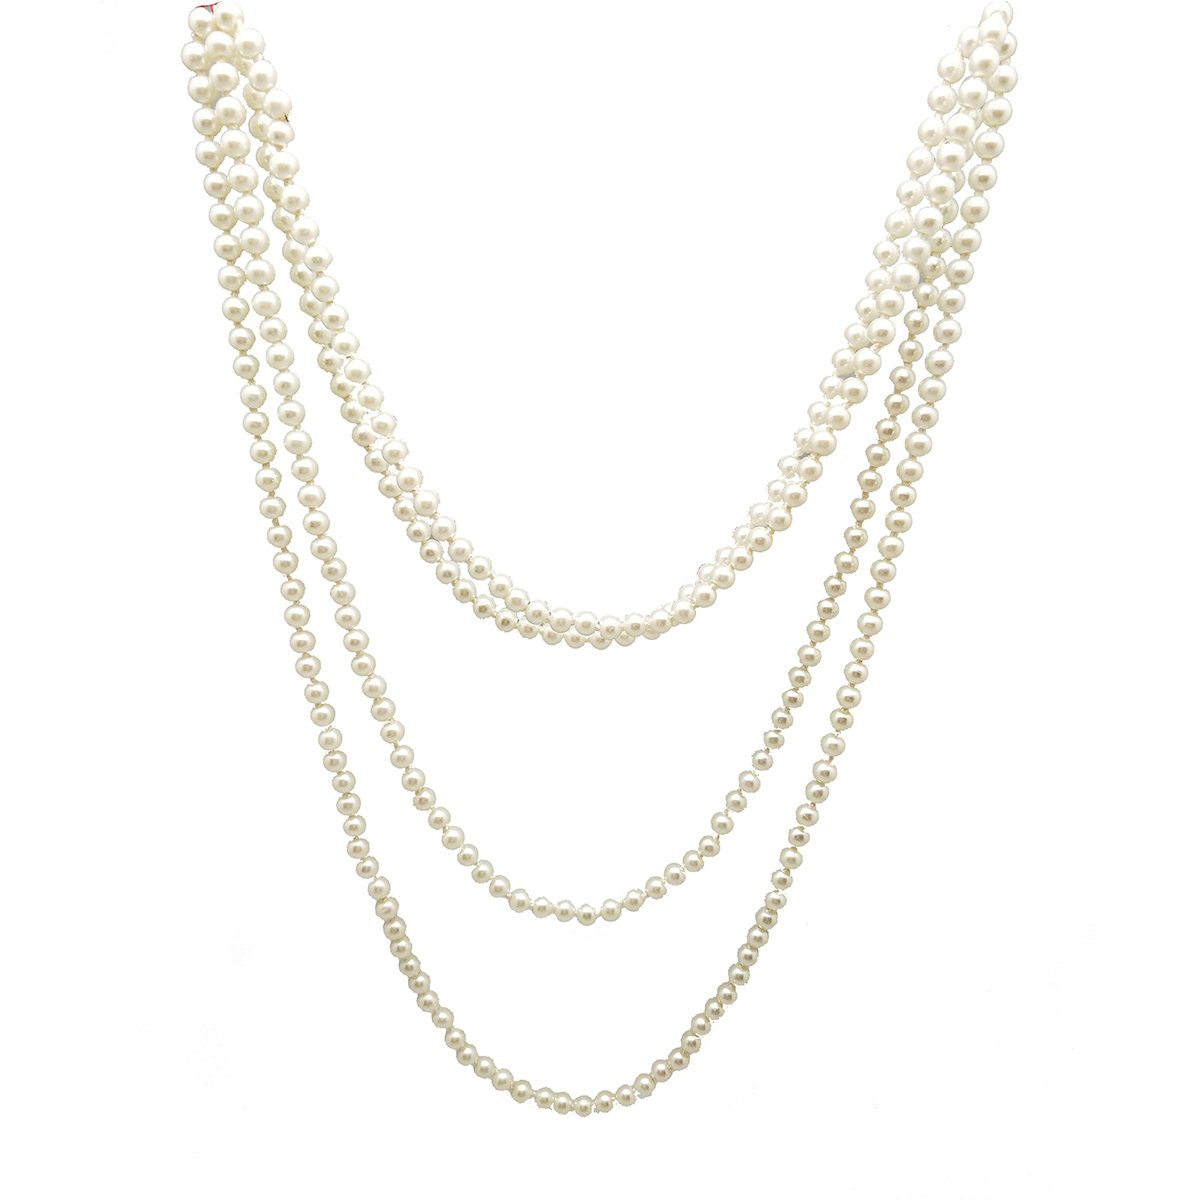 We We Women's White Black Grey Multilayer Long Imitation Pearl Strands Necklace, 59'' 59'' (White 5mm Bead 73'') We We 2 W01